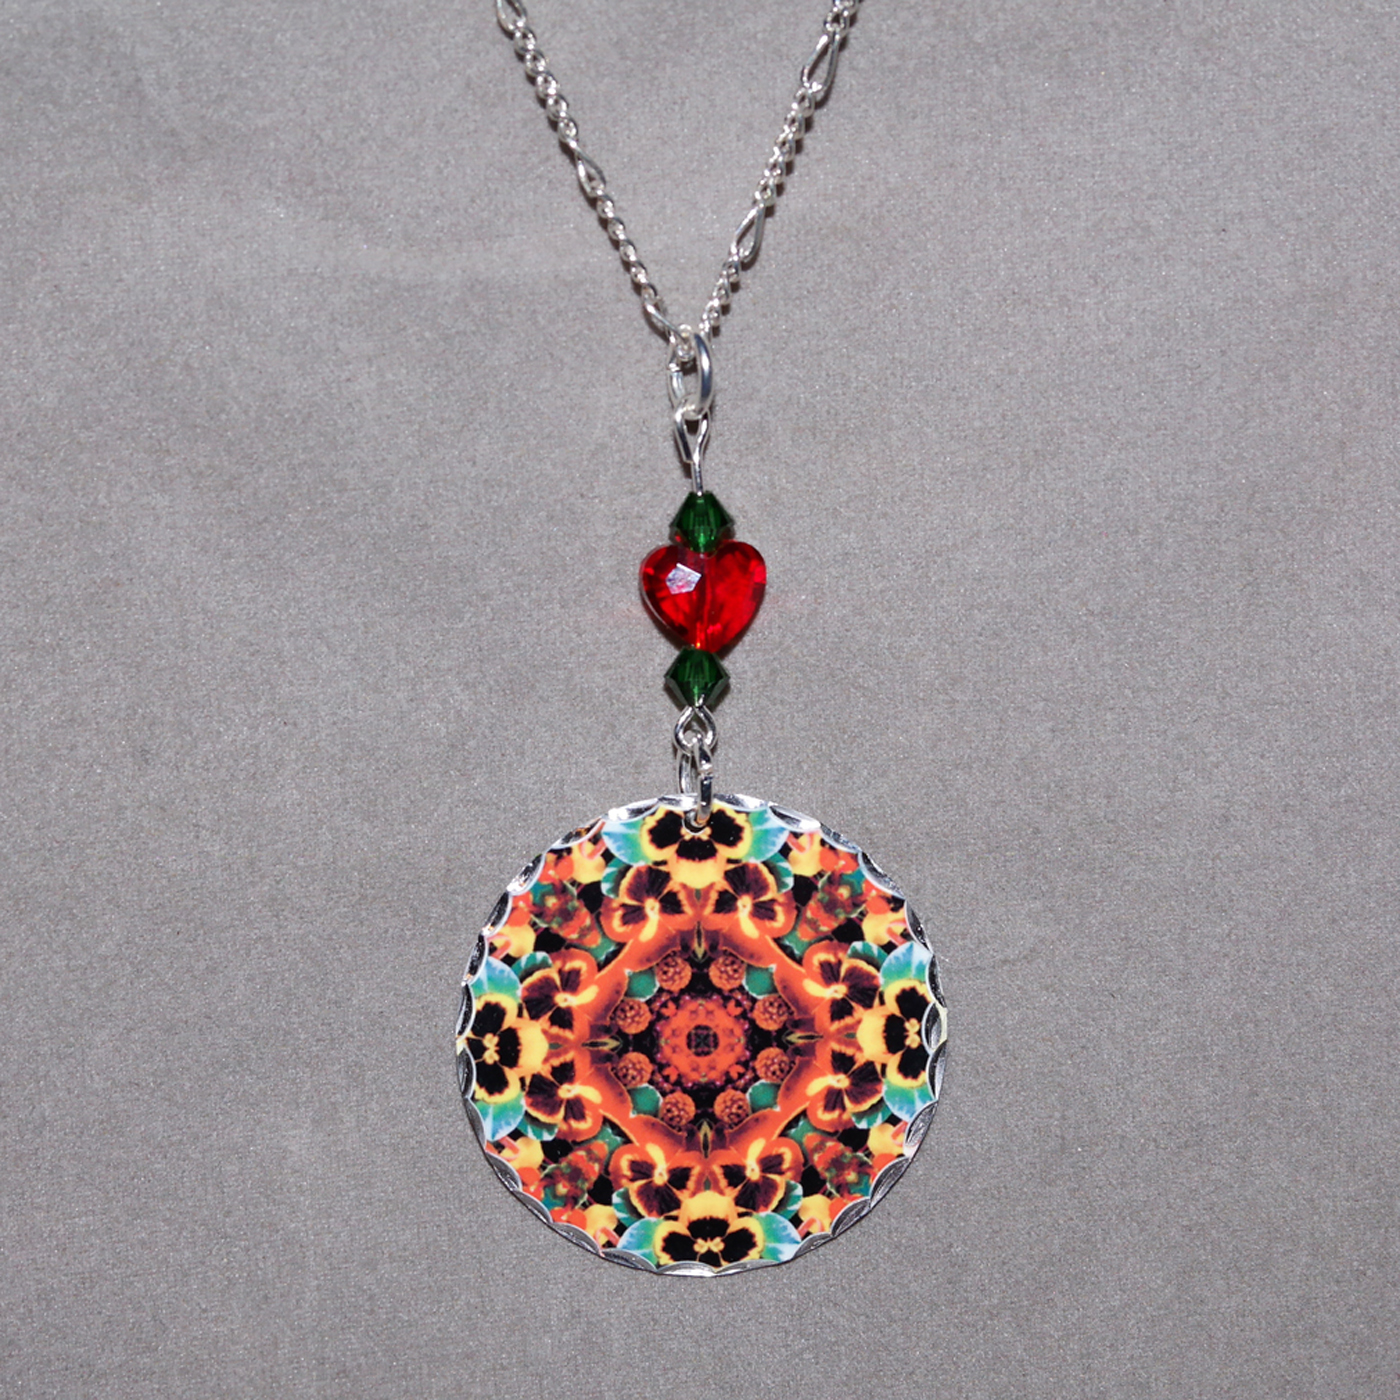 products firenze by andamir necklace boho chic